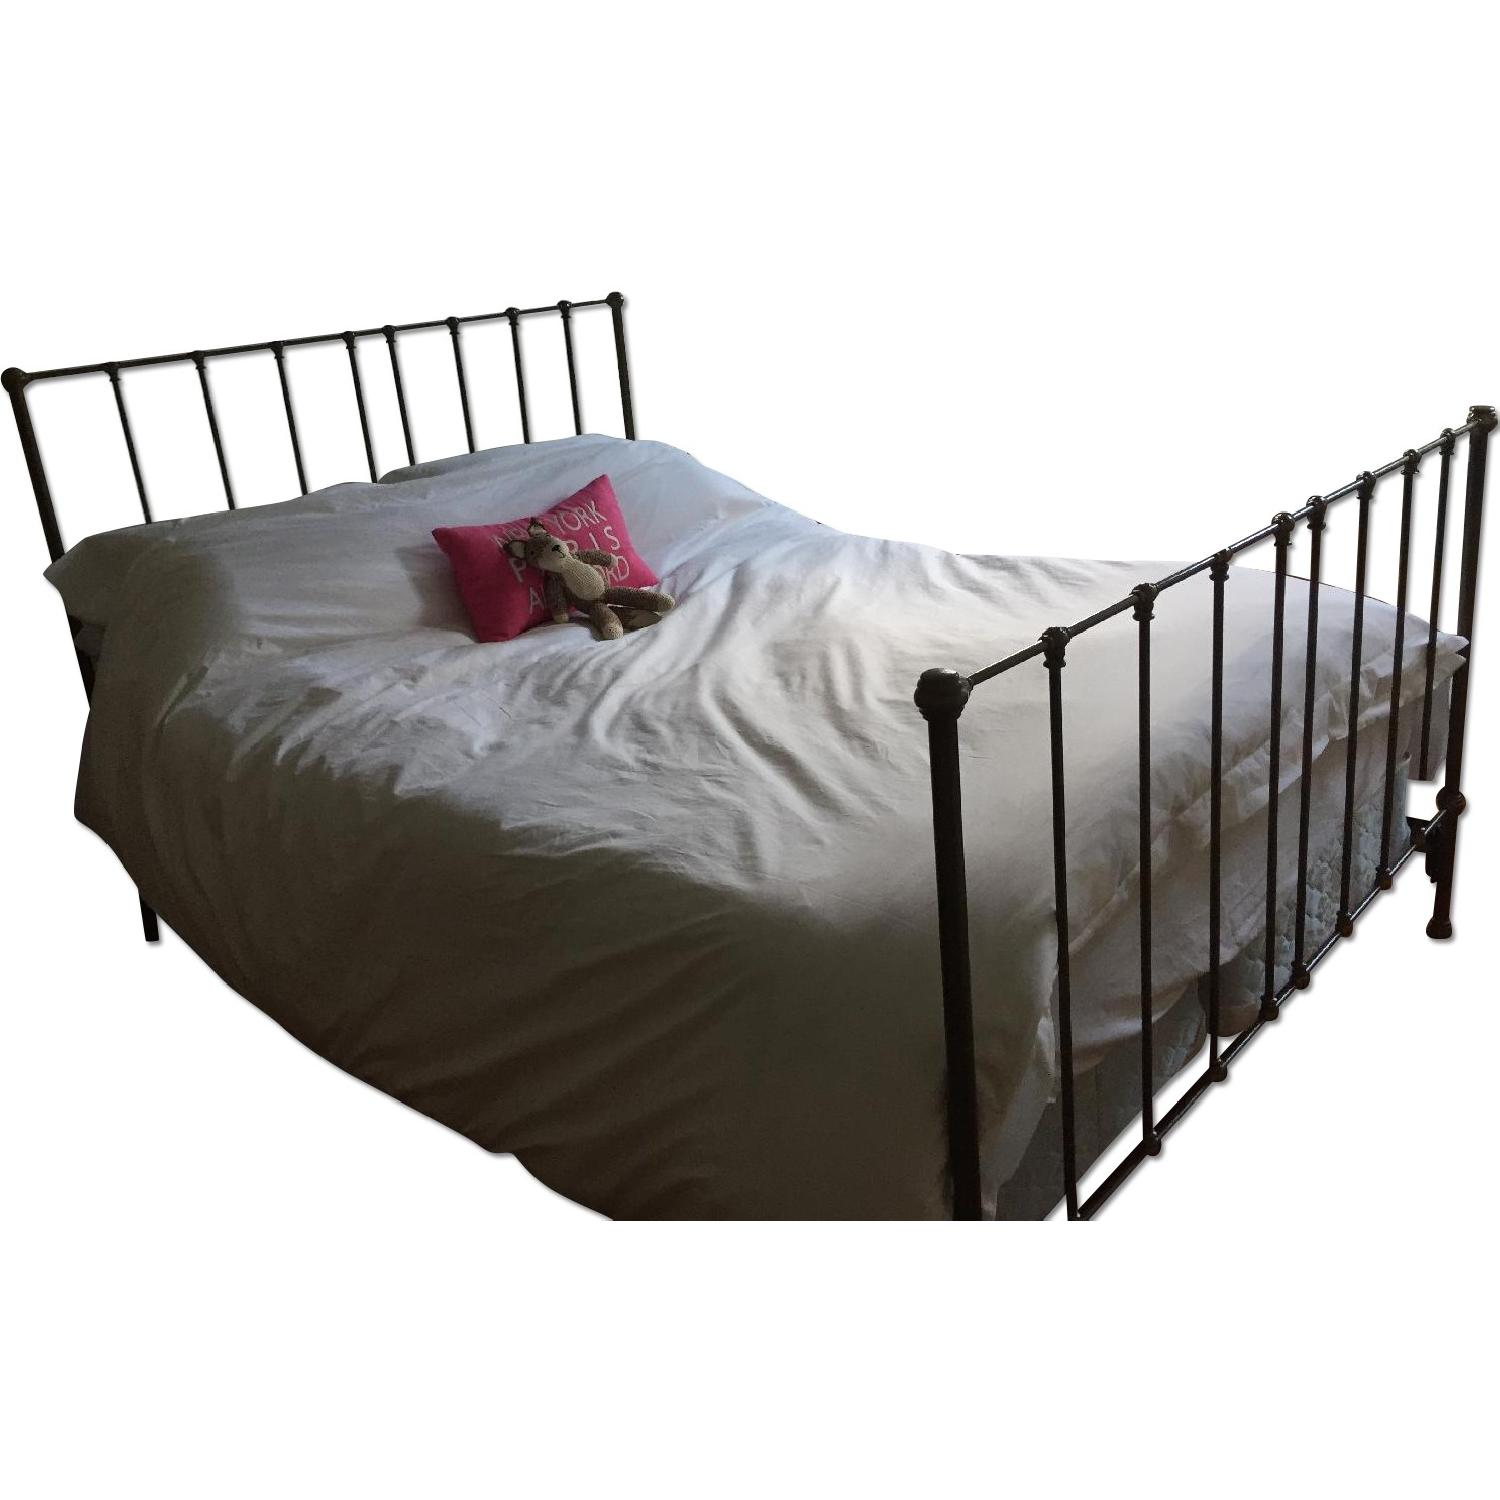 Queen Size Metal Bed Frame - image-0